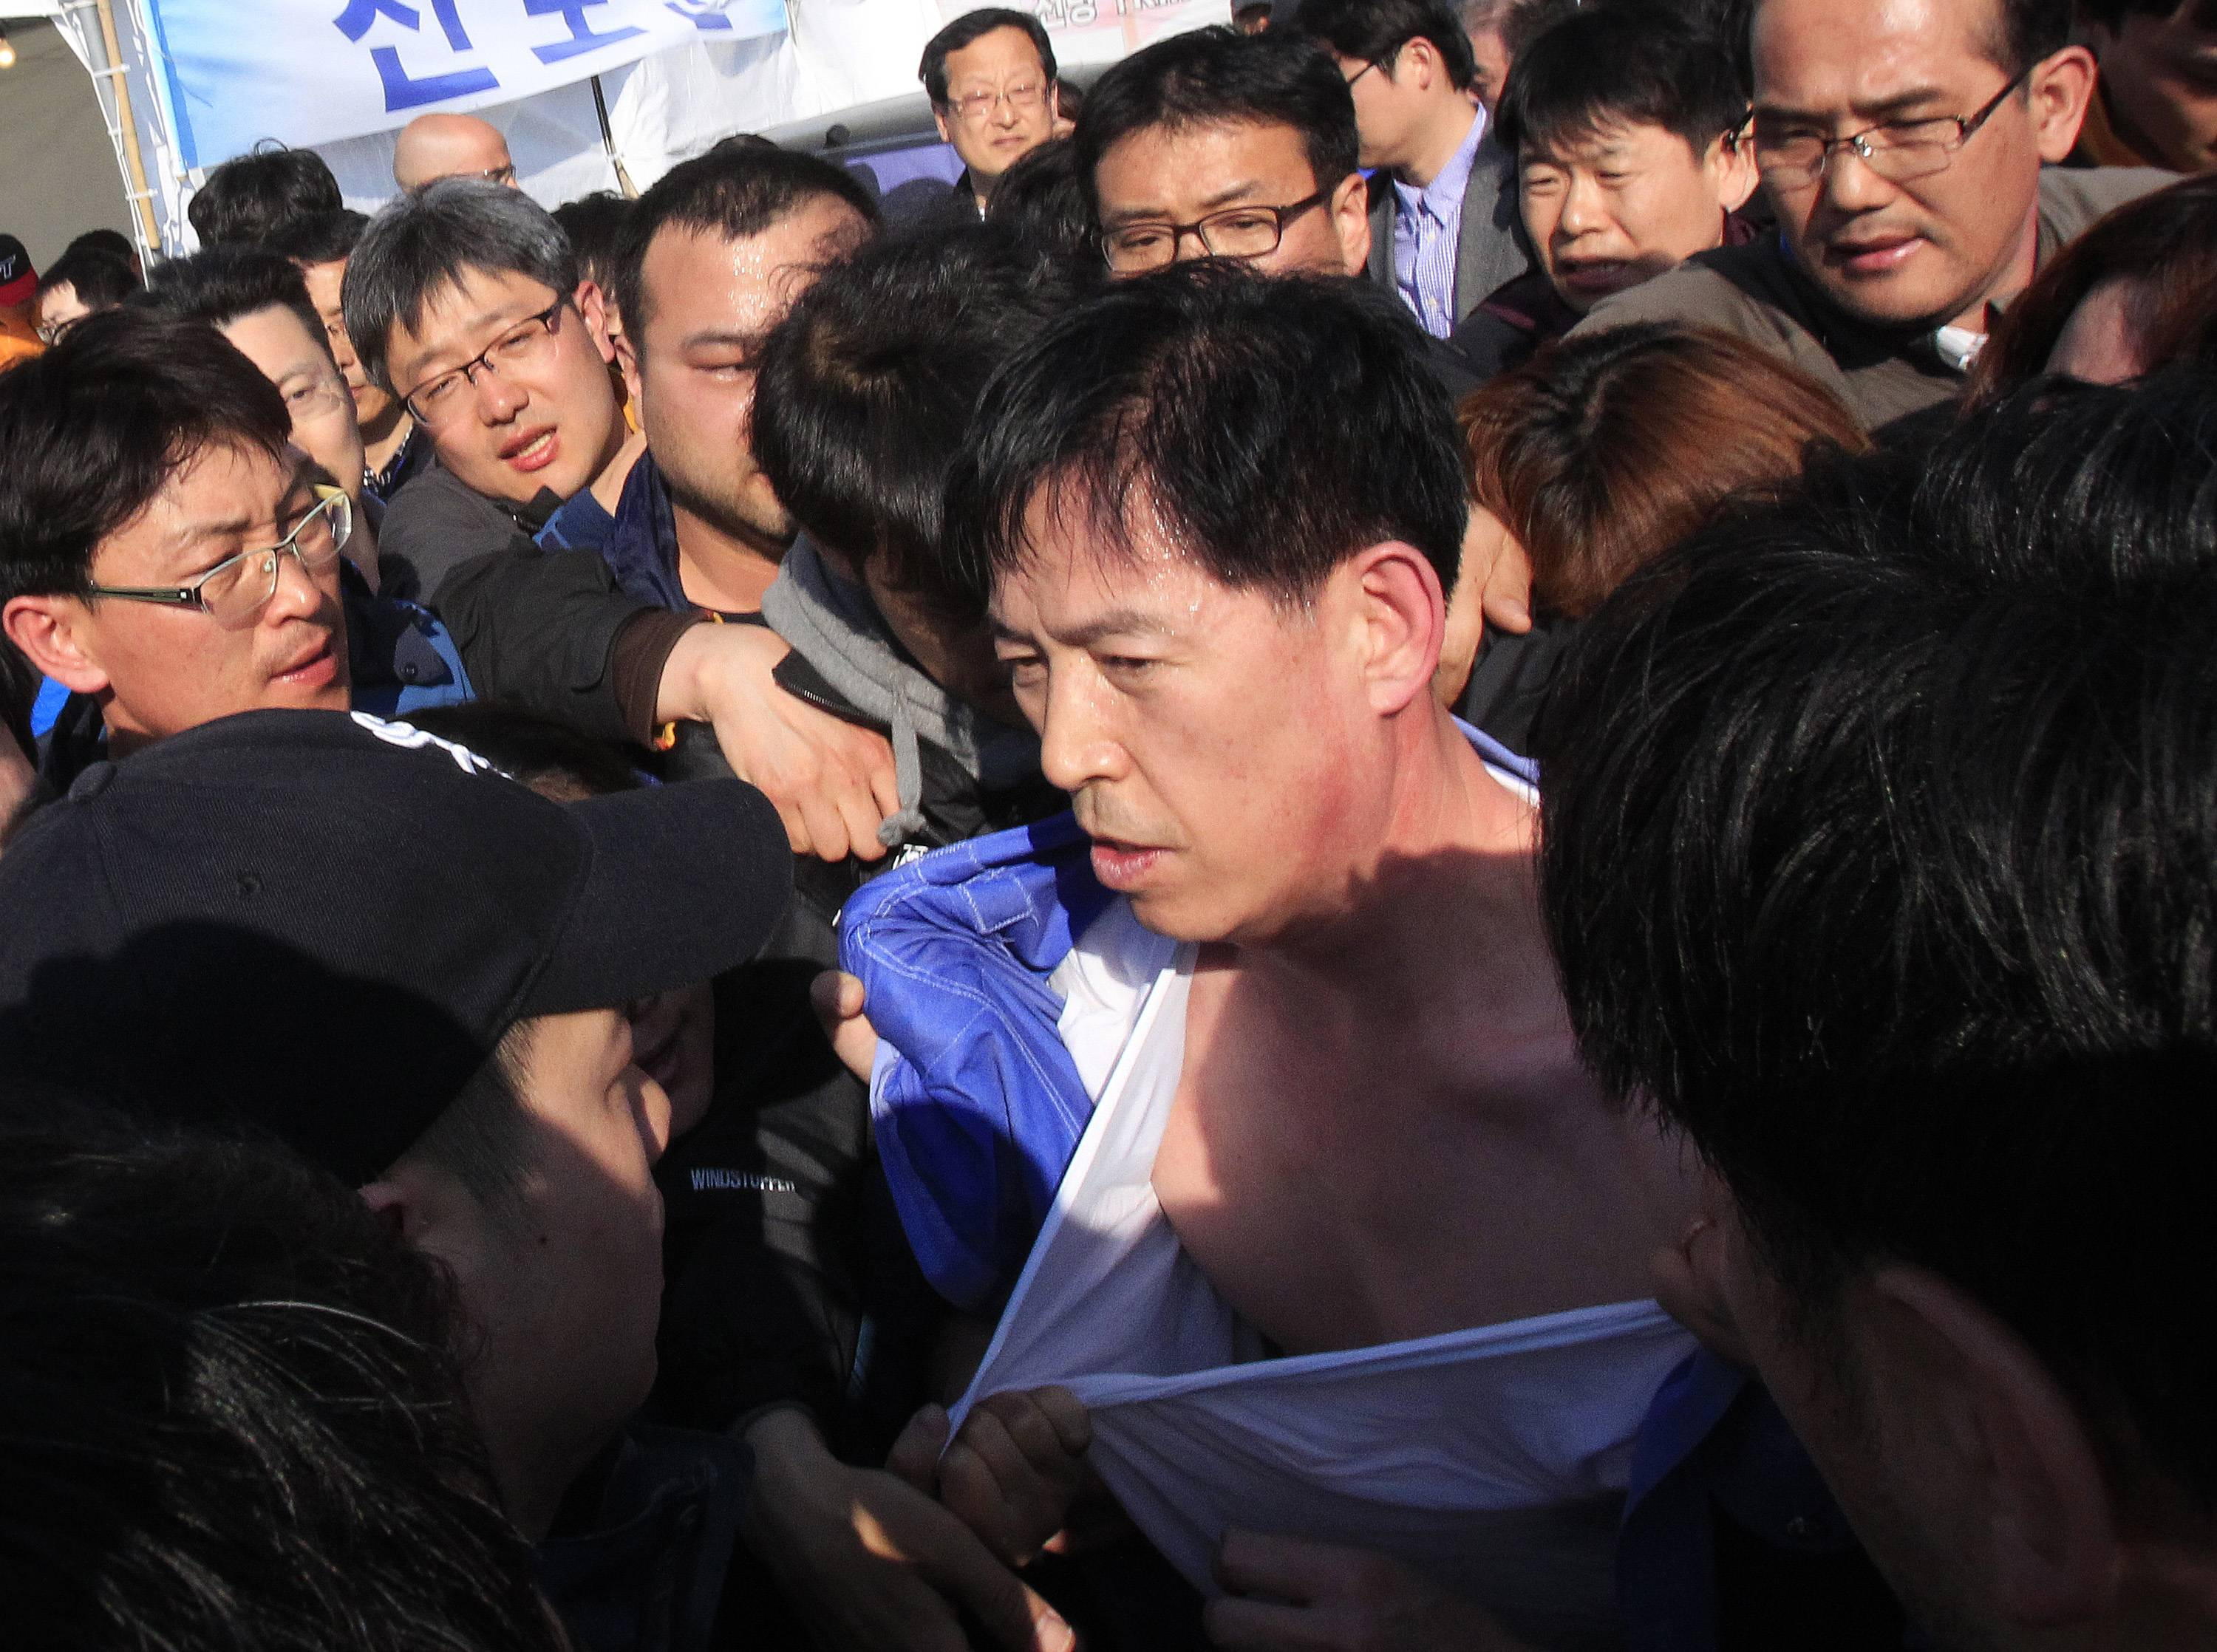 Choi Sang-hwan, South Korean Coast Guard police officer, is surround by relatives of passengers aboard the sunken ferry Sewol in the water off the southern coast as they demand for faster rescue operation, at a port in Jindo, South Korea, Thursday.